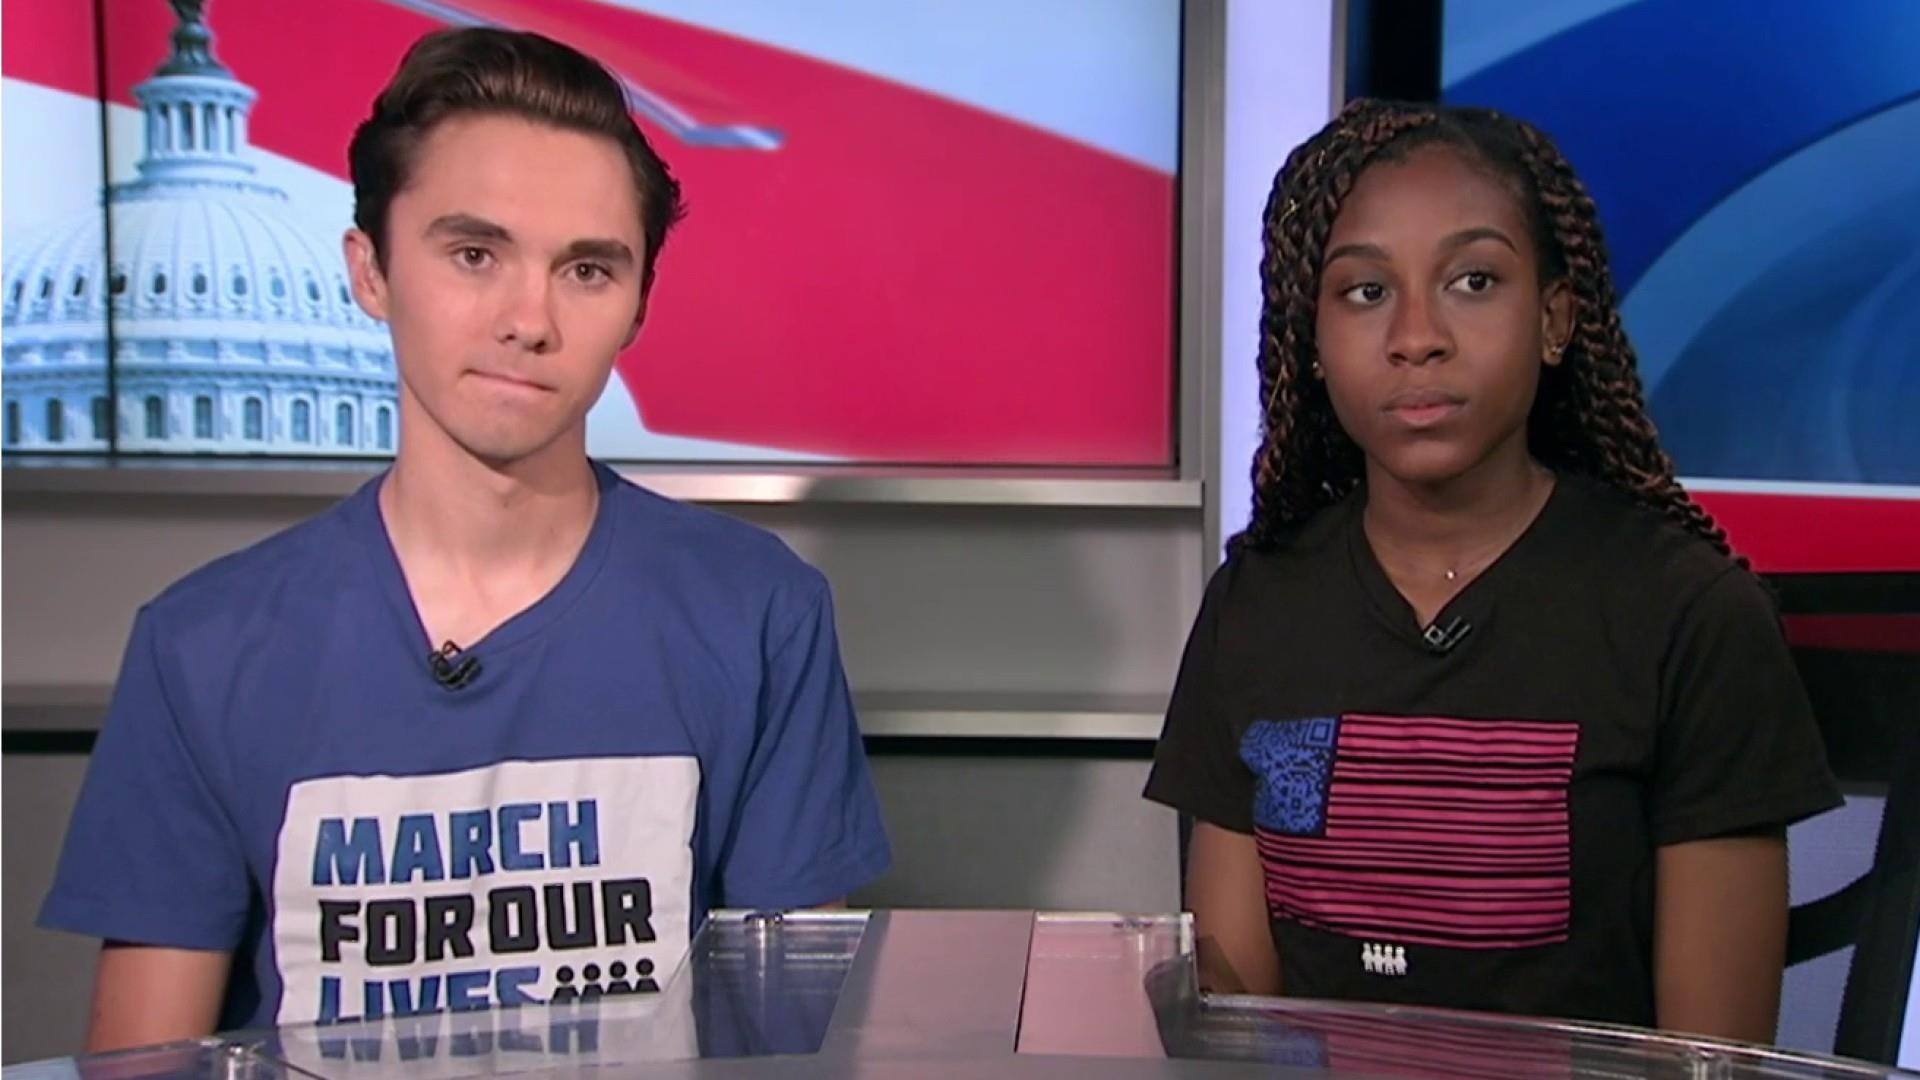 March for Our Lives unveils bold new proposal for gun control legislation